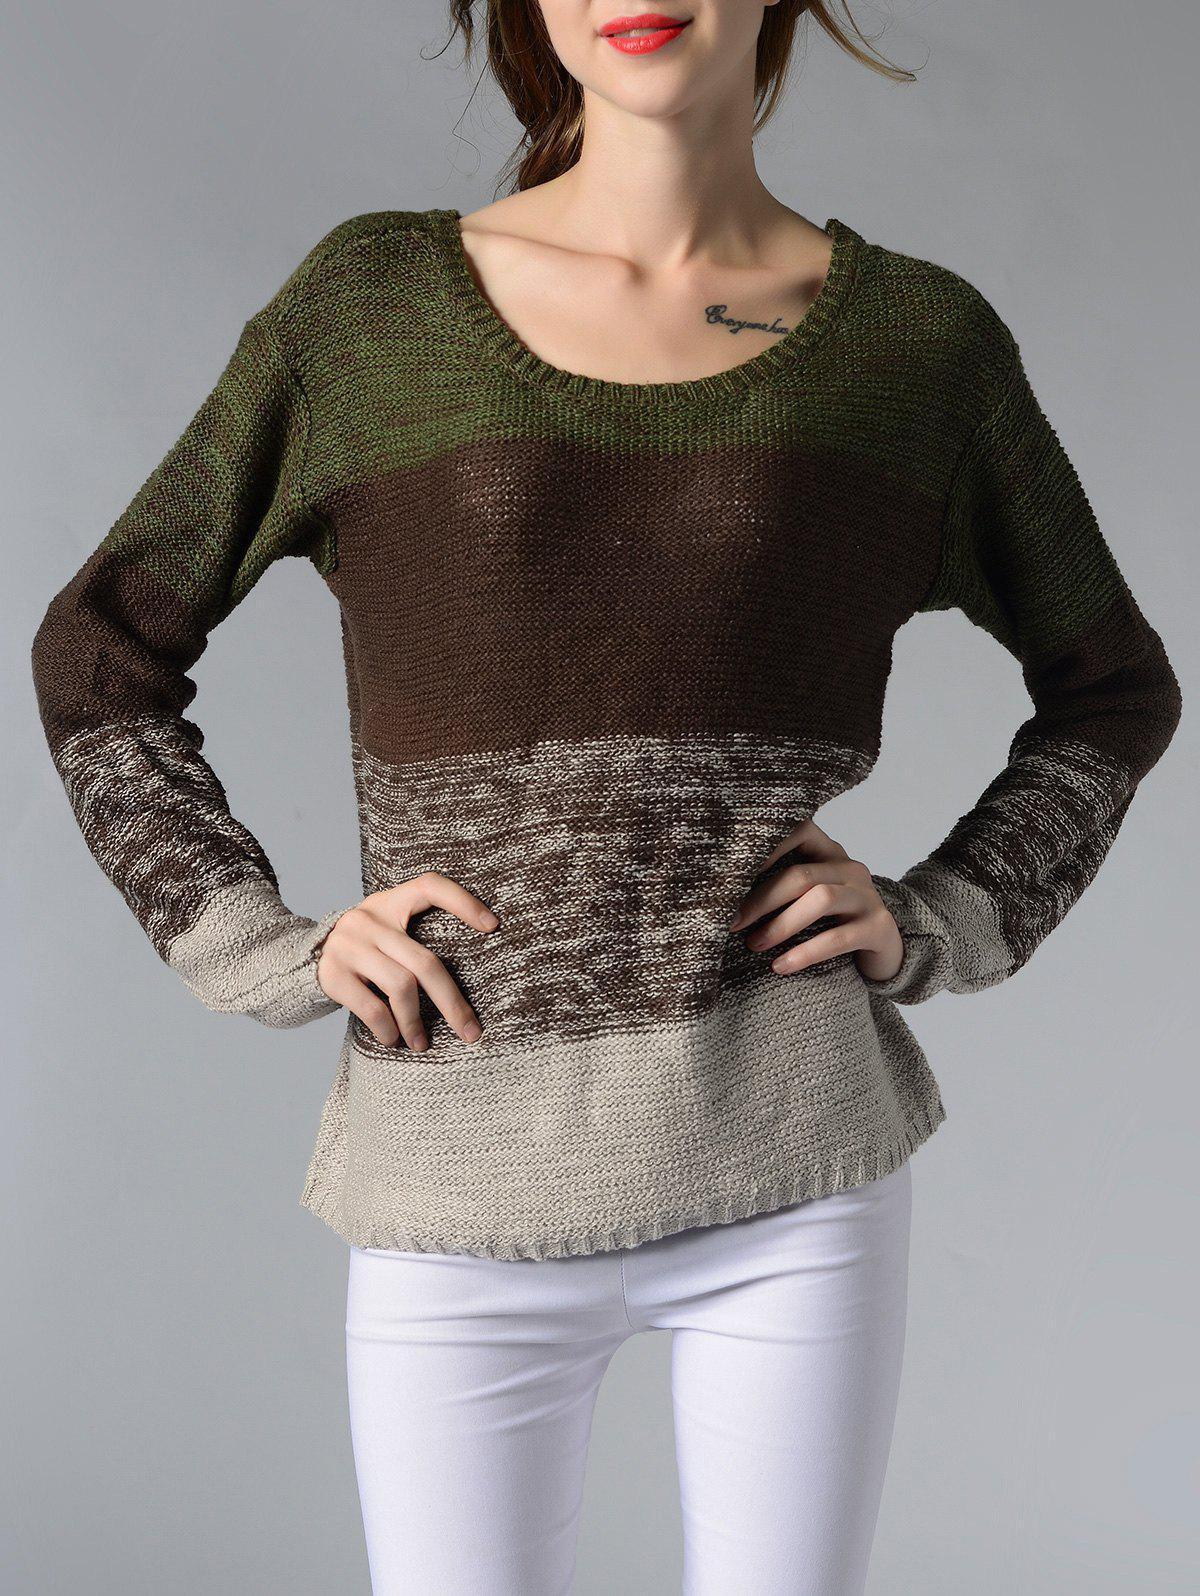 Chic Scoop Neck Long Sleeve Color Block Women's Sweater - BROWN XL